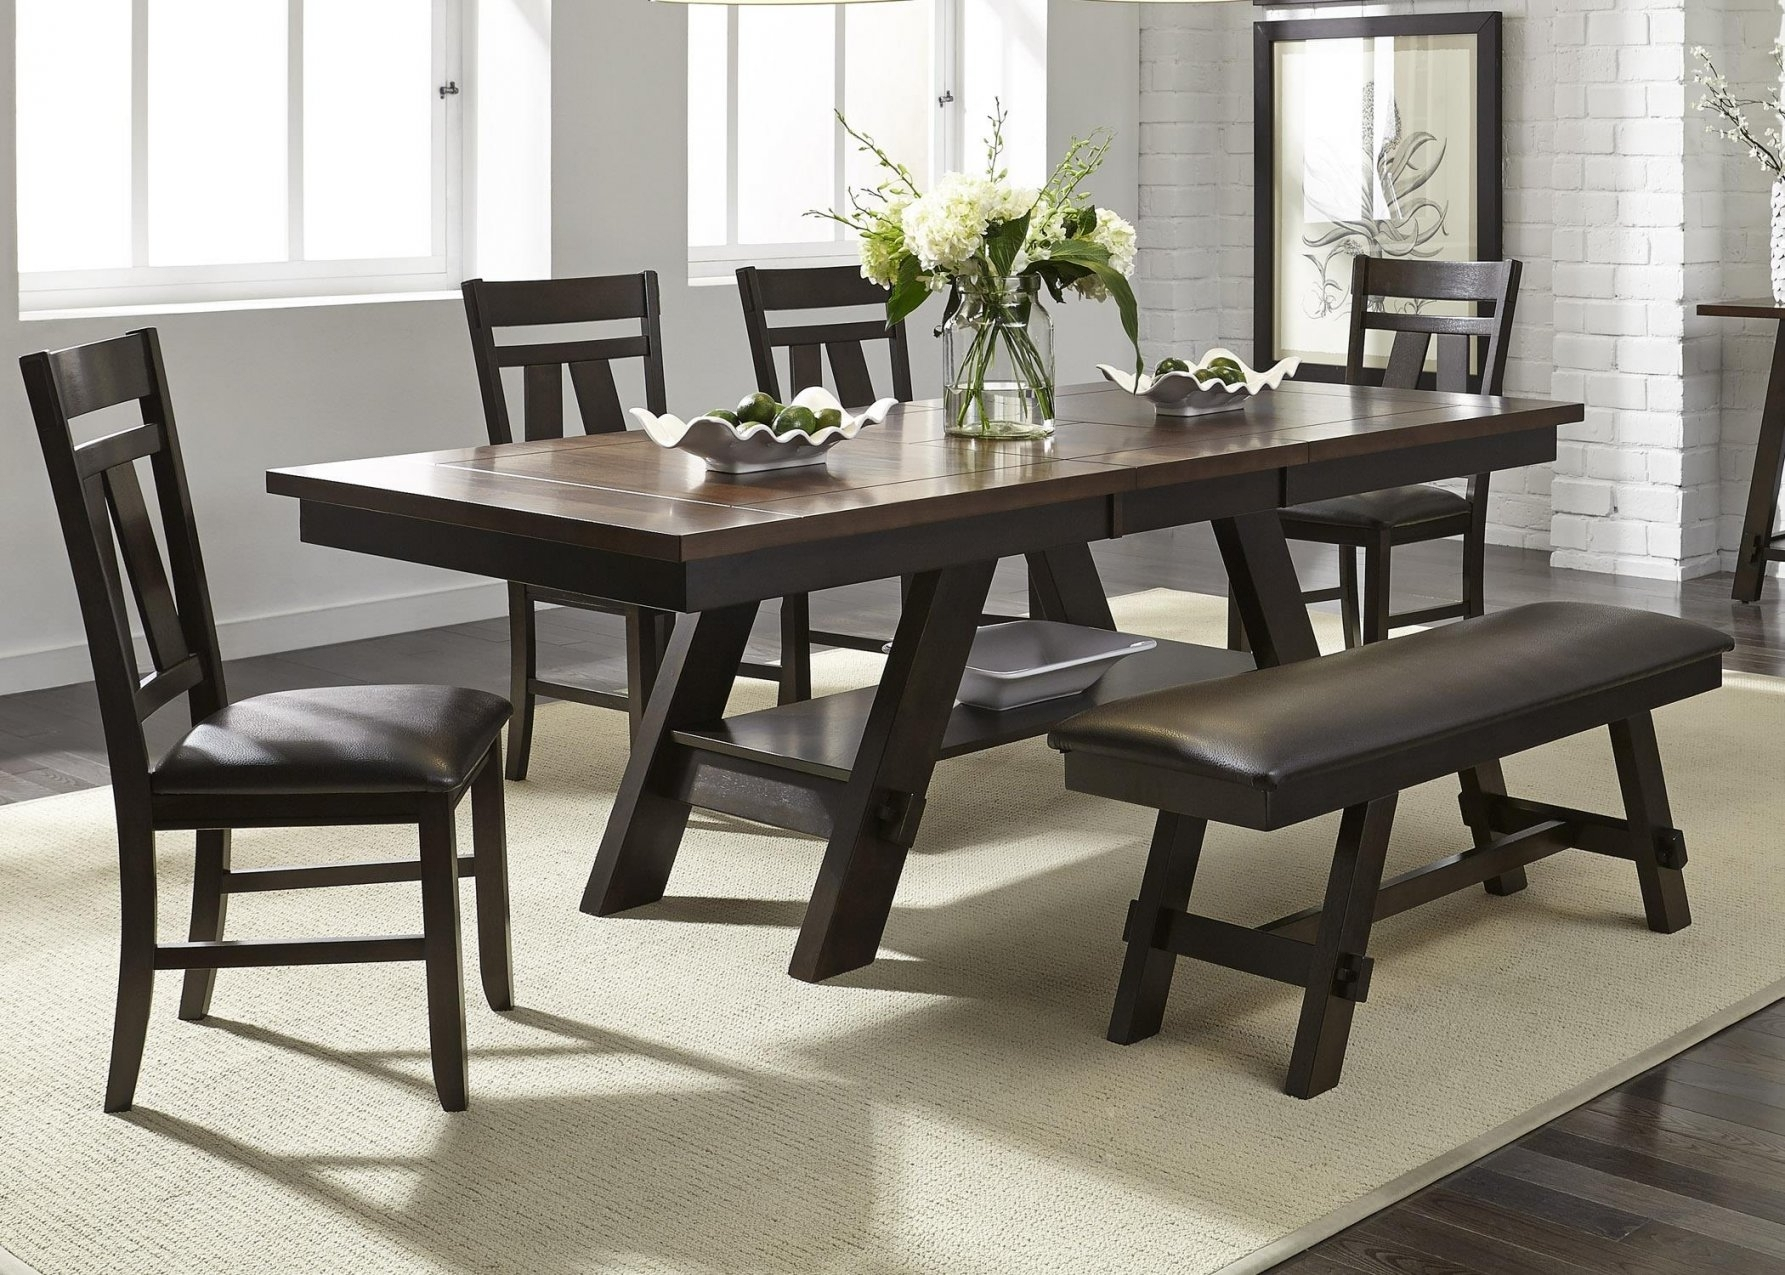 6 Piece Dining Table Set – Castrophotos With Most Current Partridge 6 Piece Dining Sets (View 11 of 20)